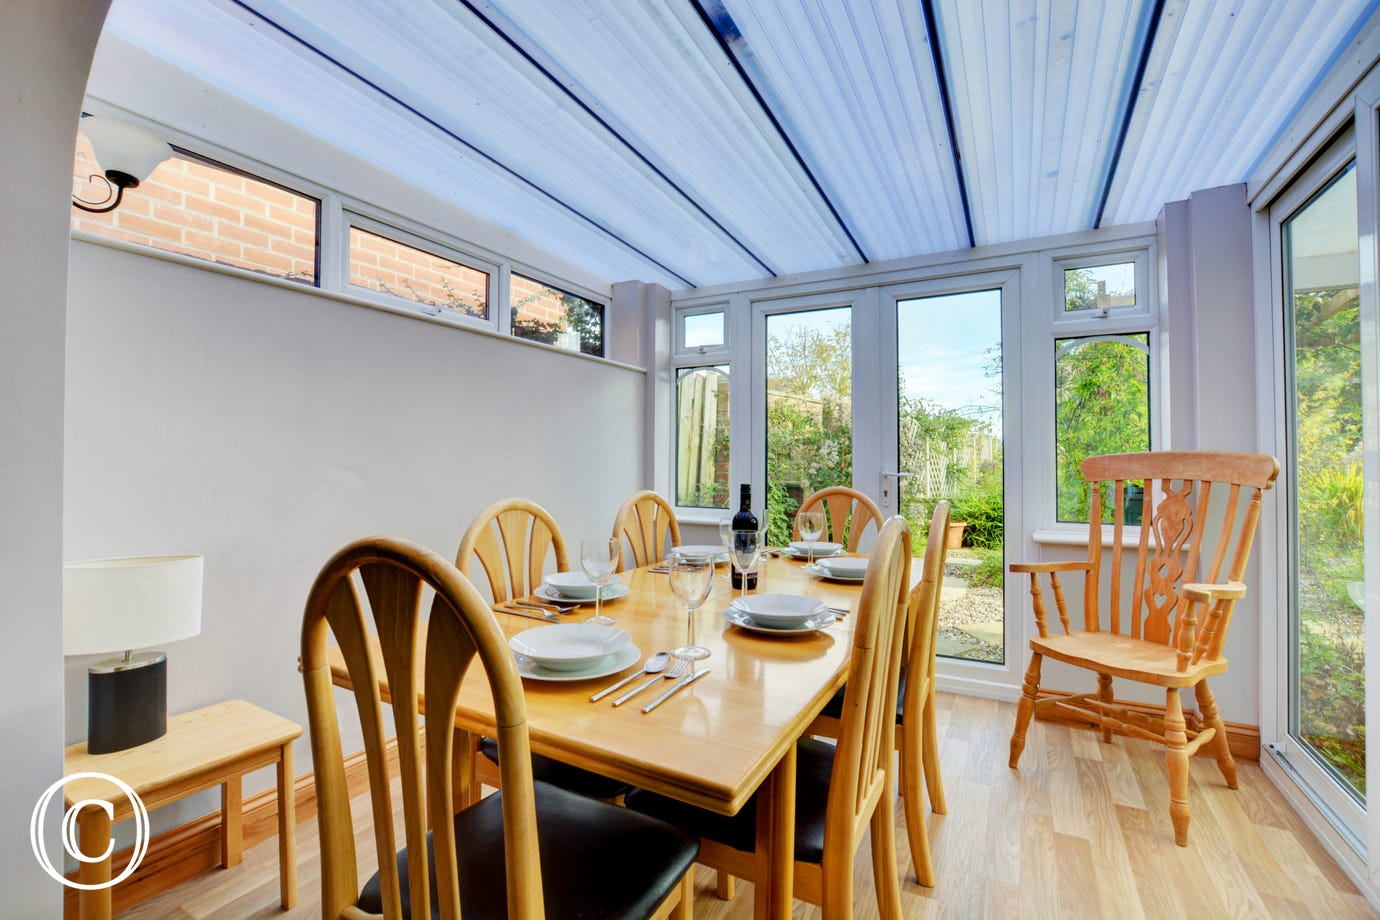 This property benefits from a lovely conservatory with additional dining